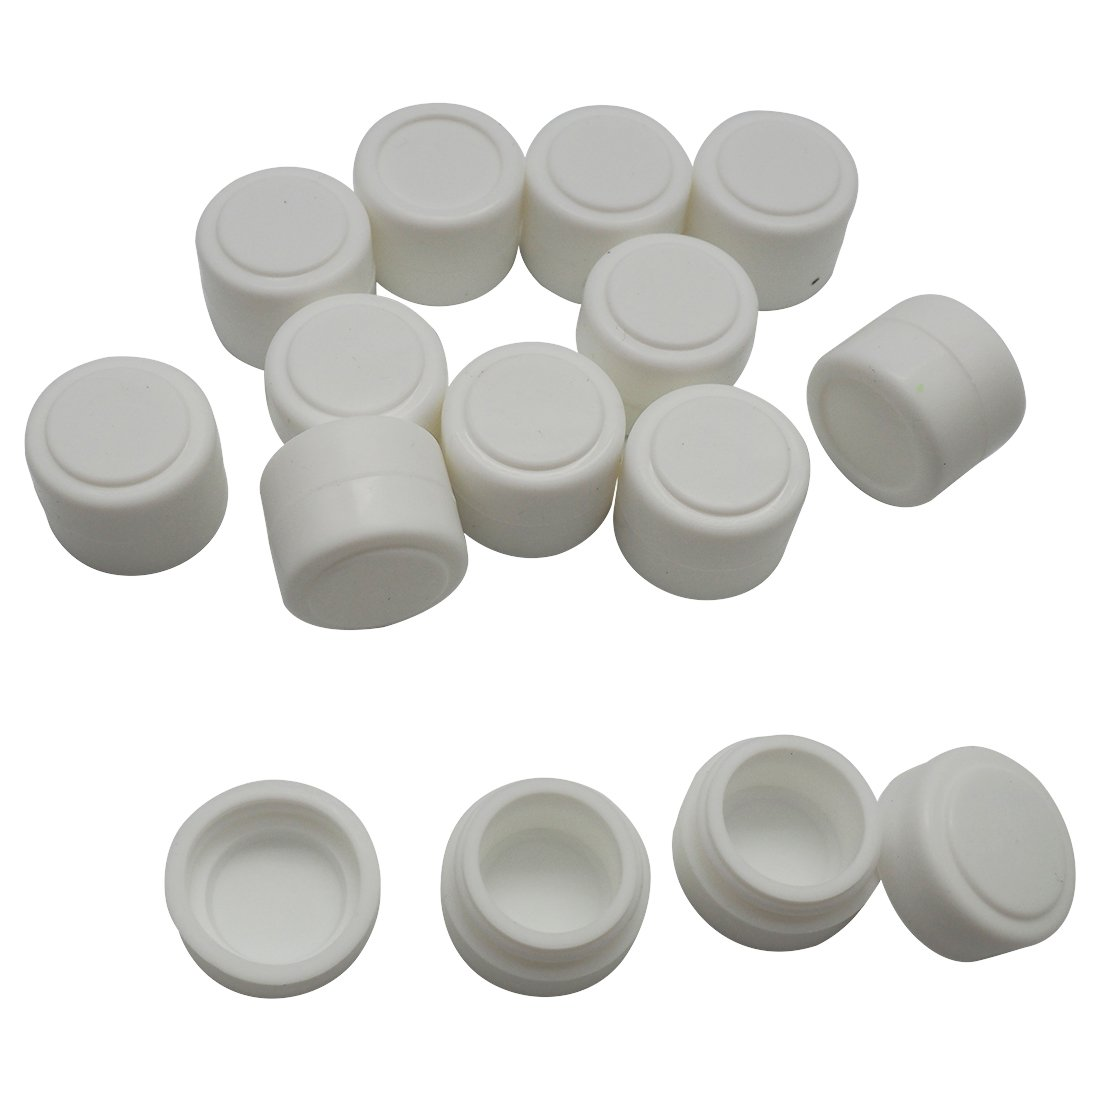 Gentcy Silicone 2ml White 300pcs Containers Silicone Storage Jar Seals Oil Wax Concentrate